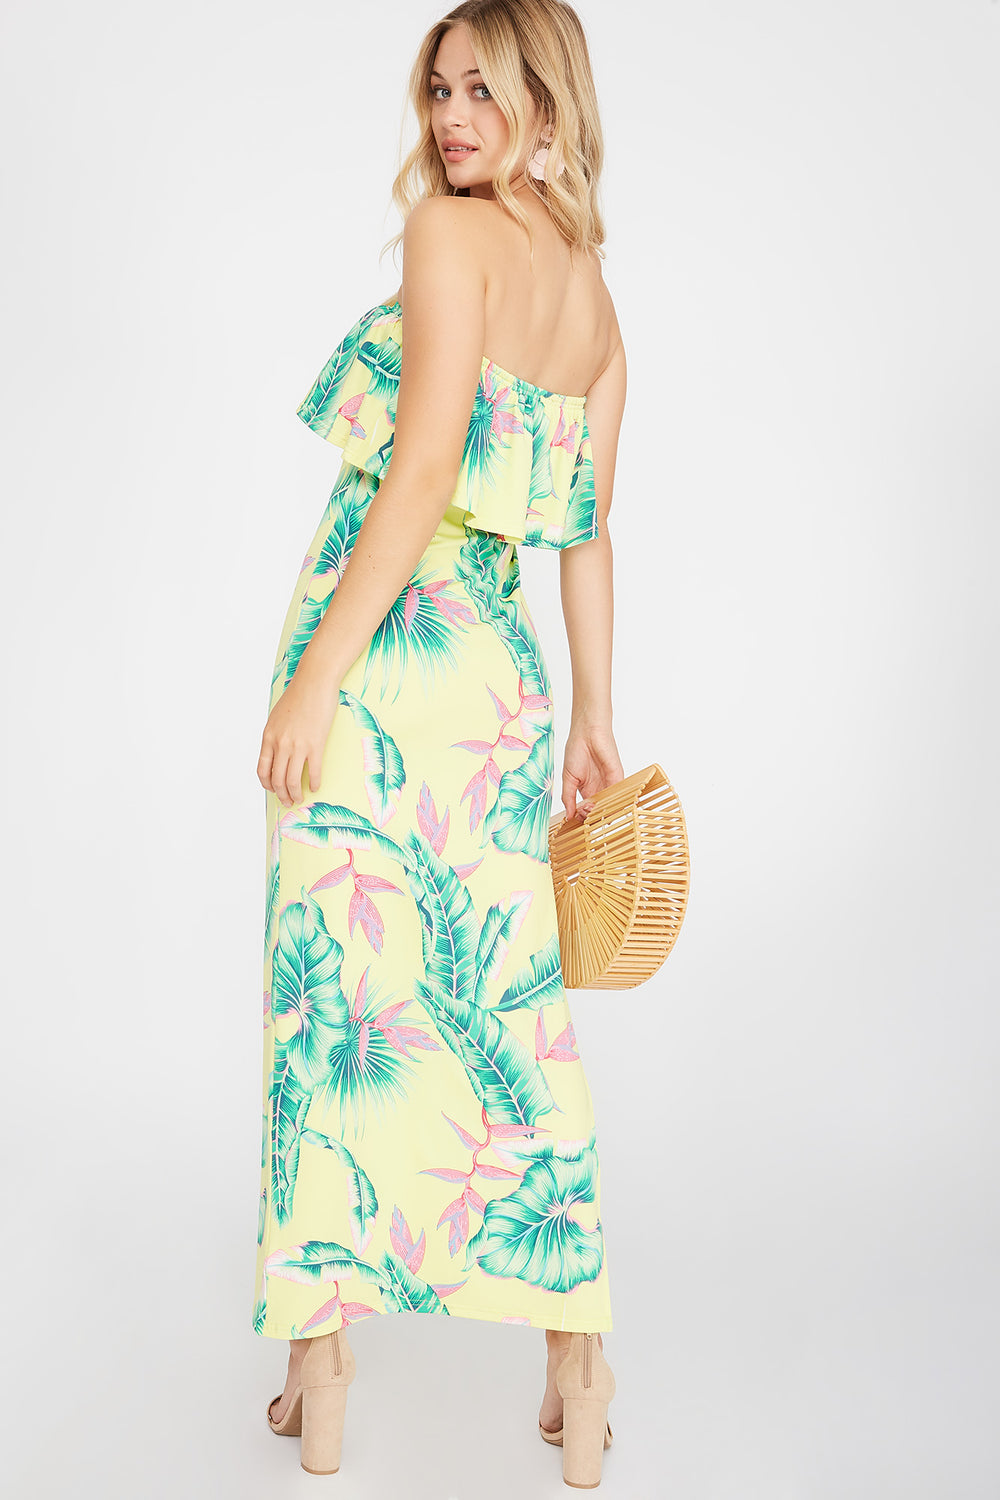 Floral Strapless Ruffle Tube Side Slit Maxi Dress Yellow